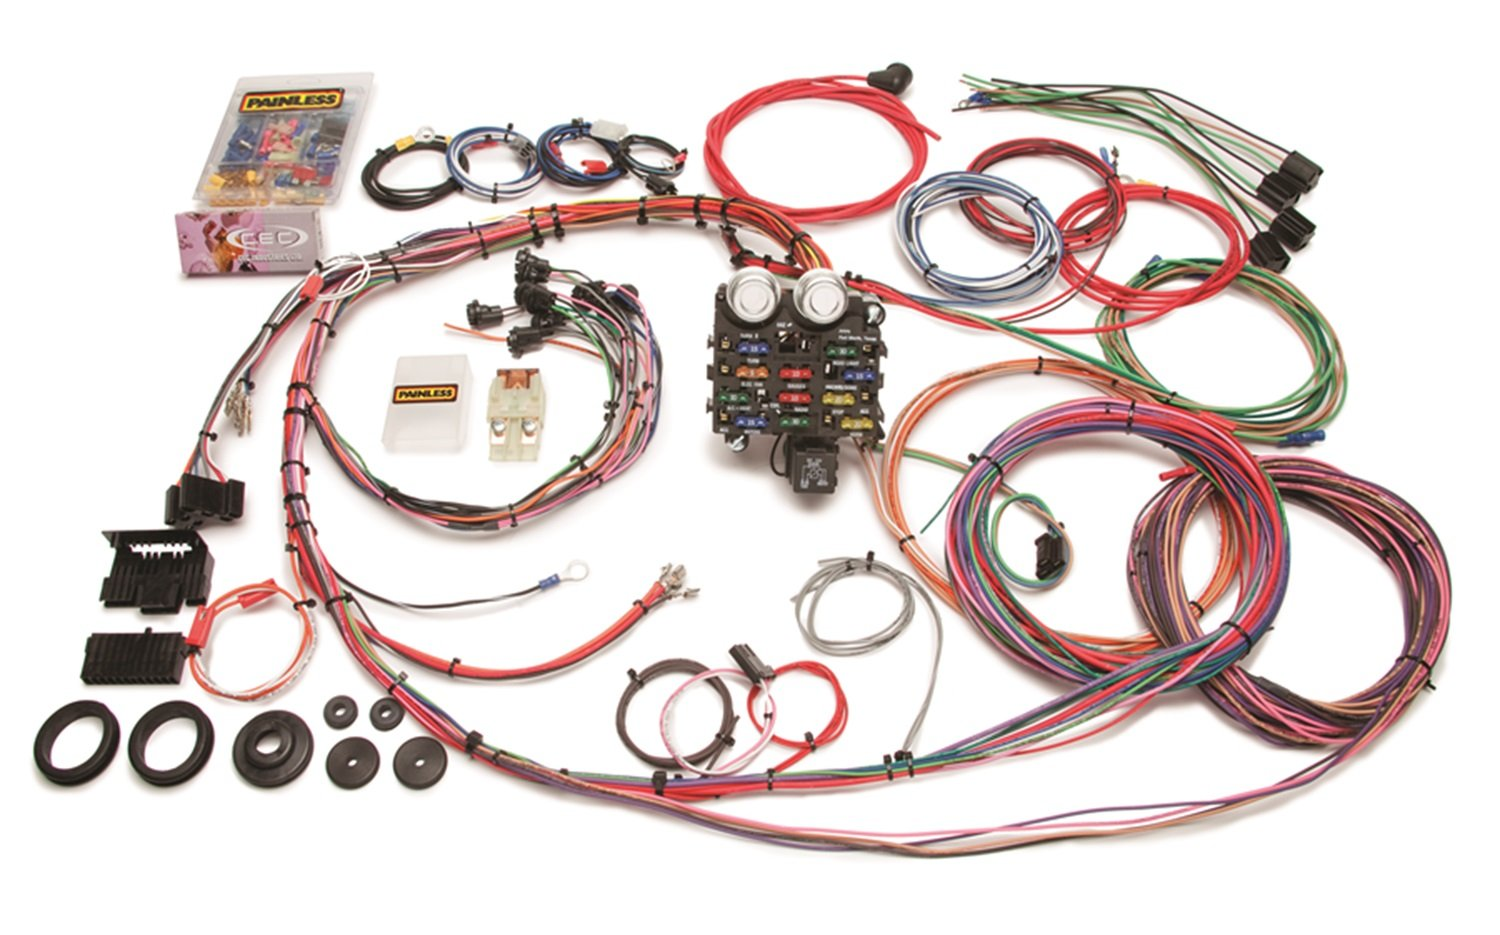 Clic Car Wiring Harness Diagram Will Be A Thing Stereo Wire Connectors Amazon Com Painless 10112 12 Circuit Pickup Automotive Rh Oem